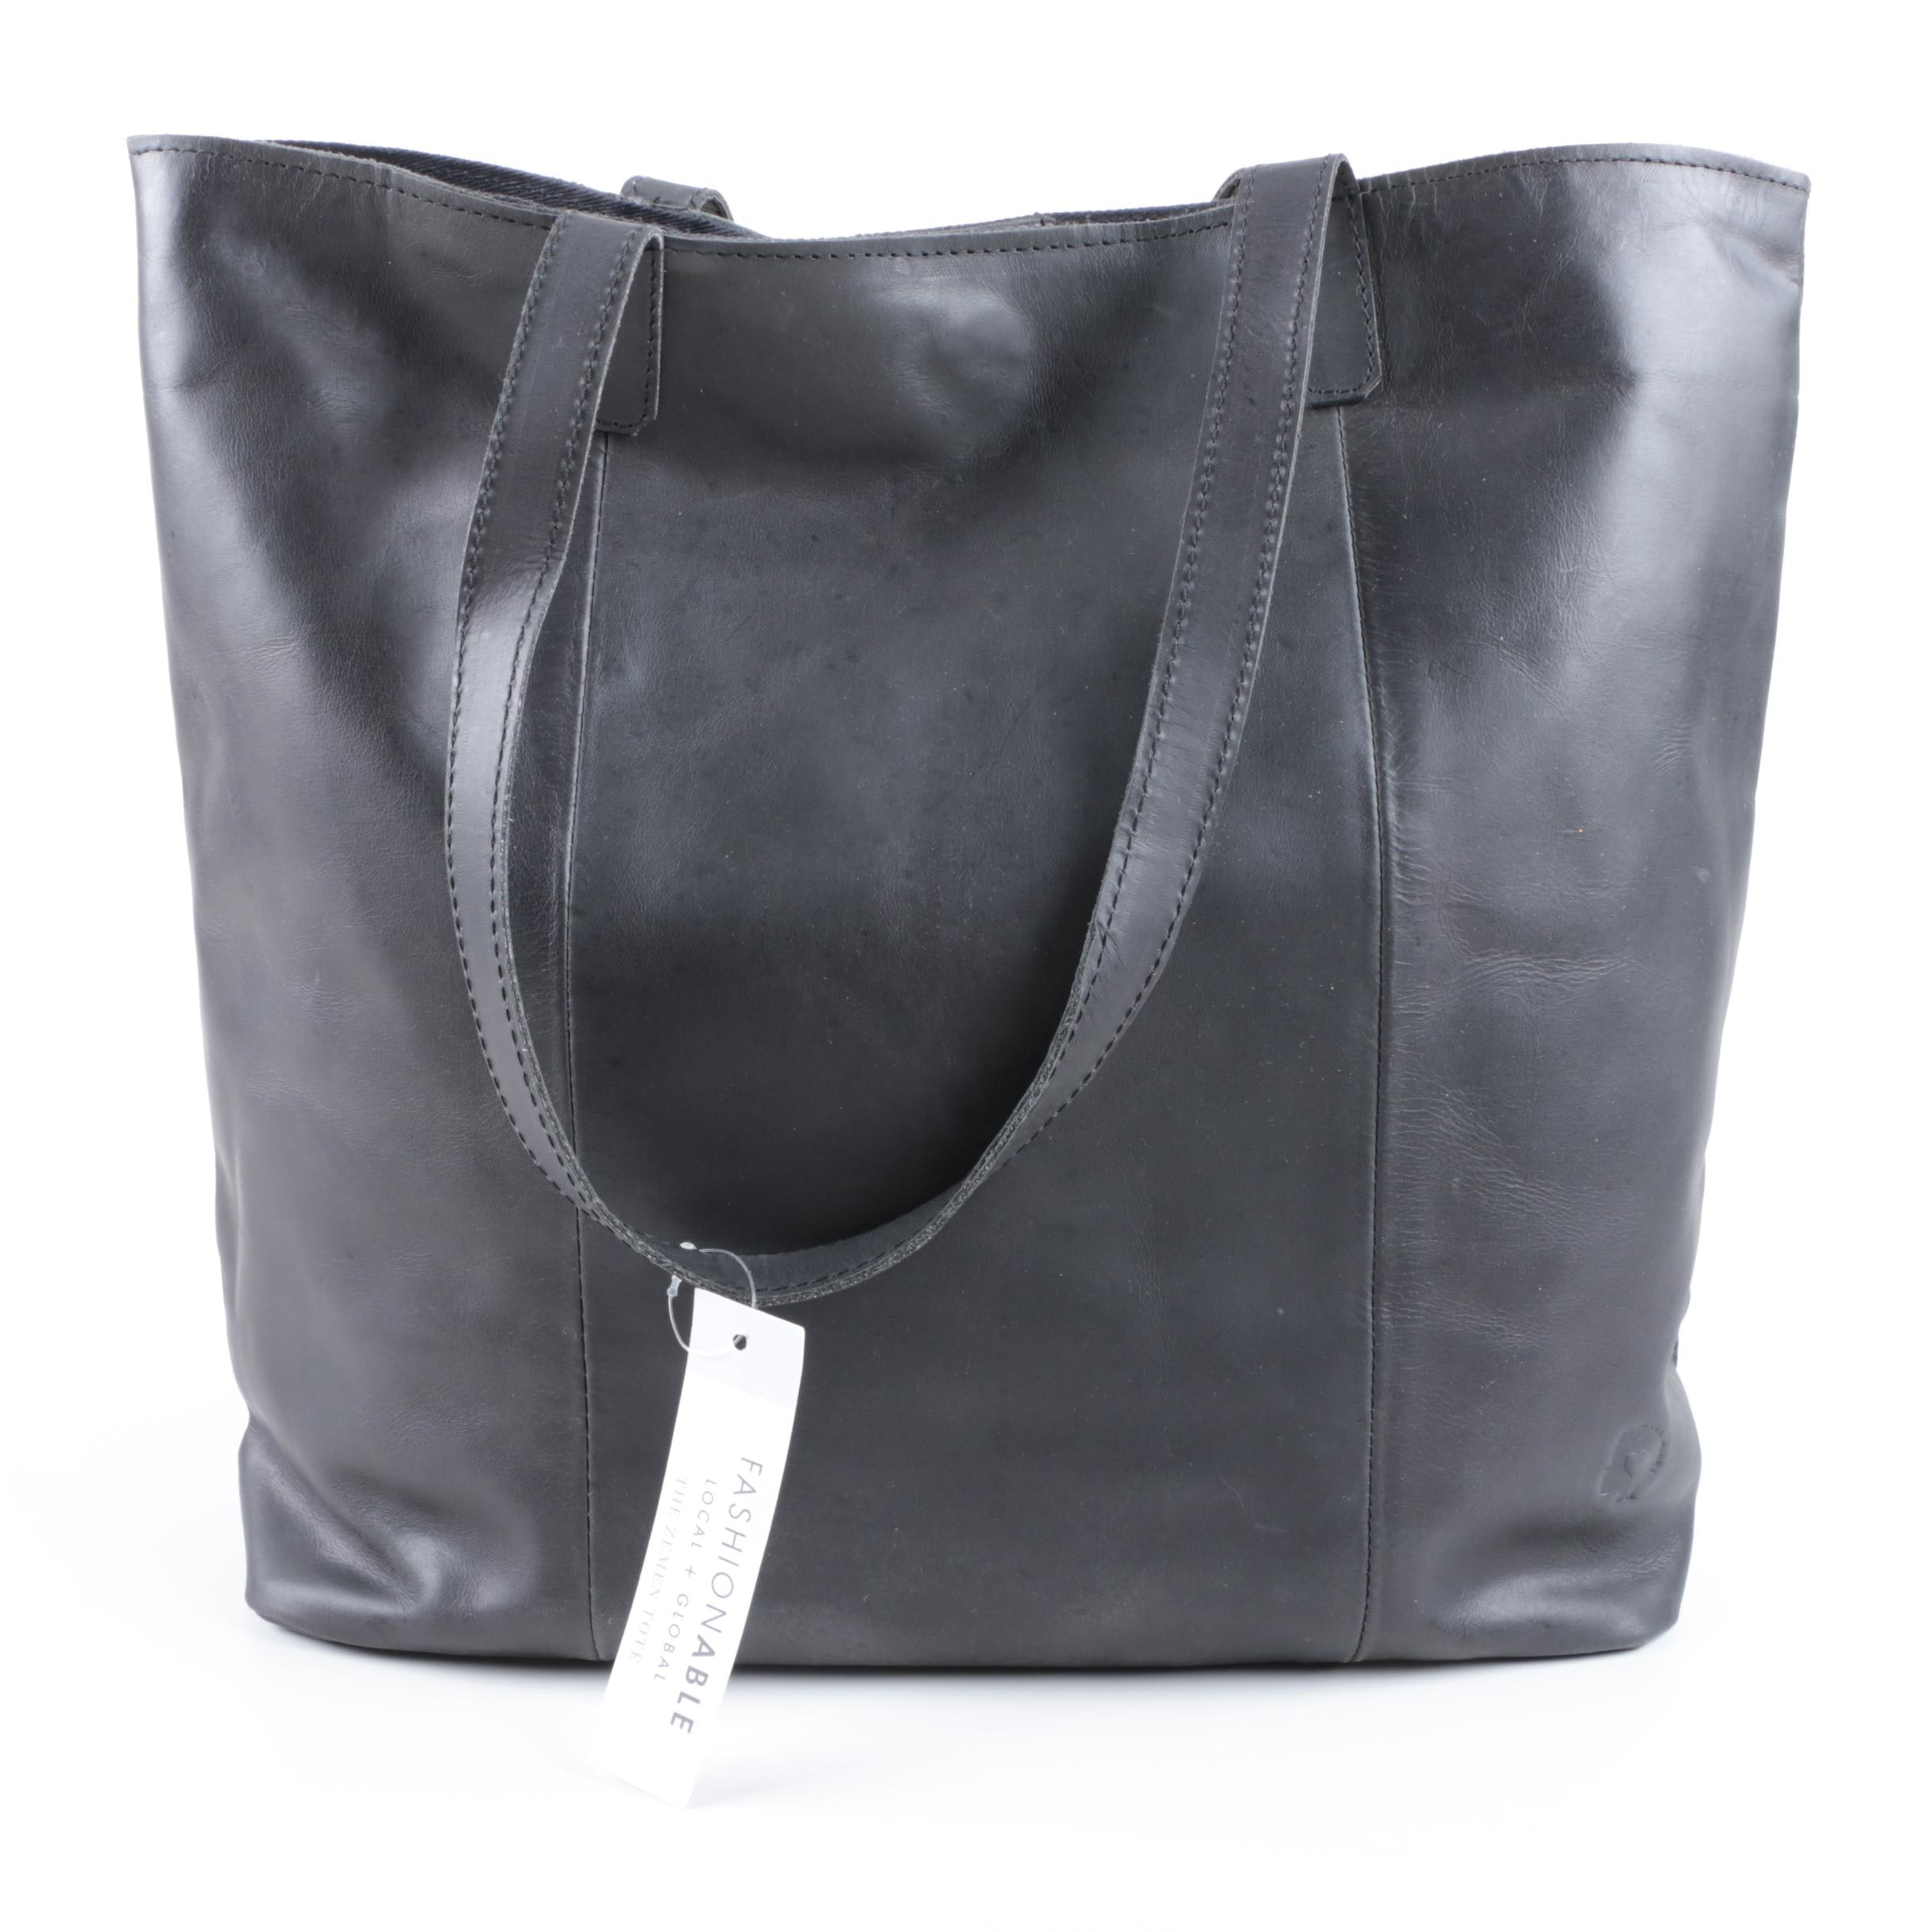 Fashionable Local + Global Black Leather Tote